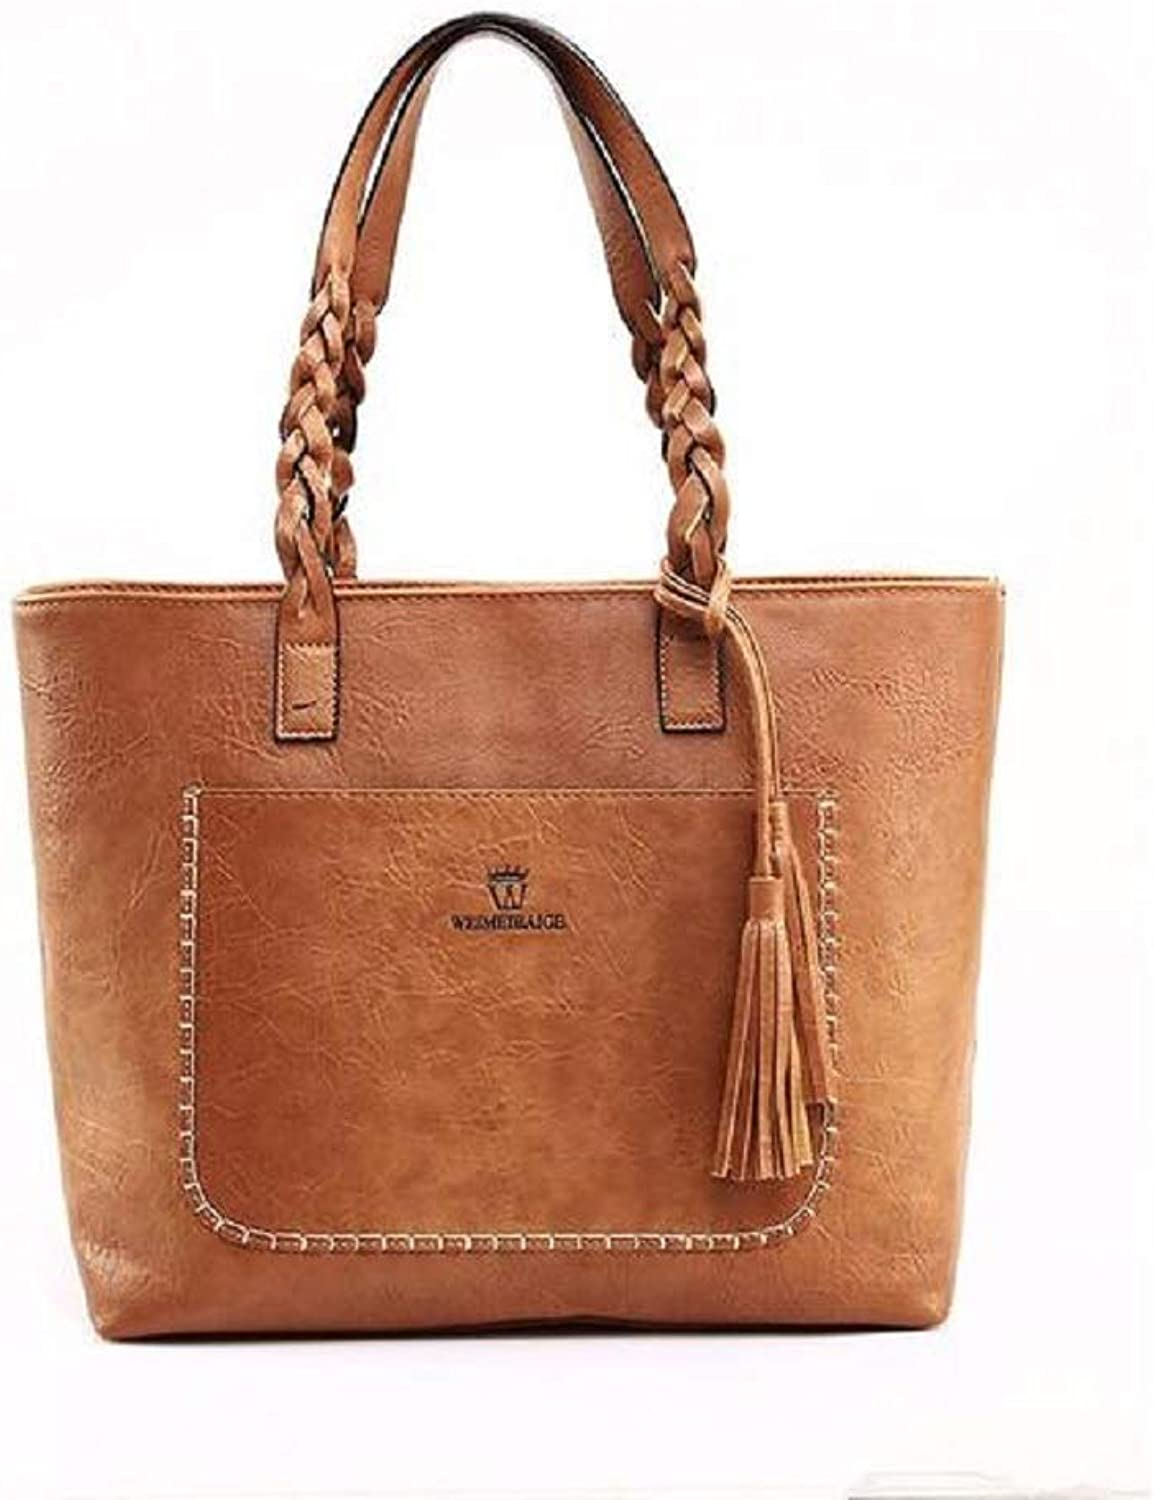 BagPrime Ladies Tote Bag with Woven Straps